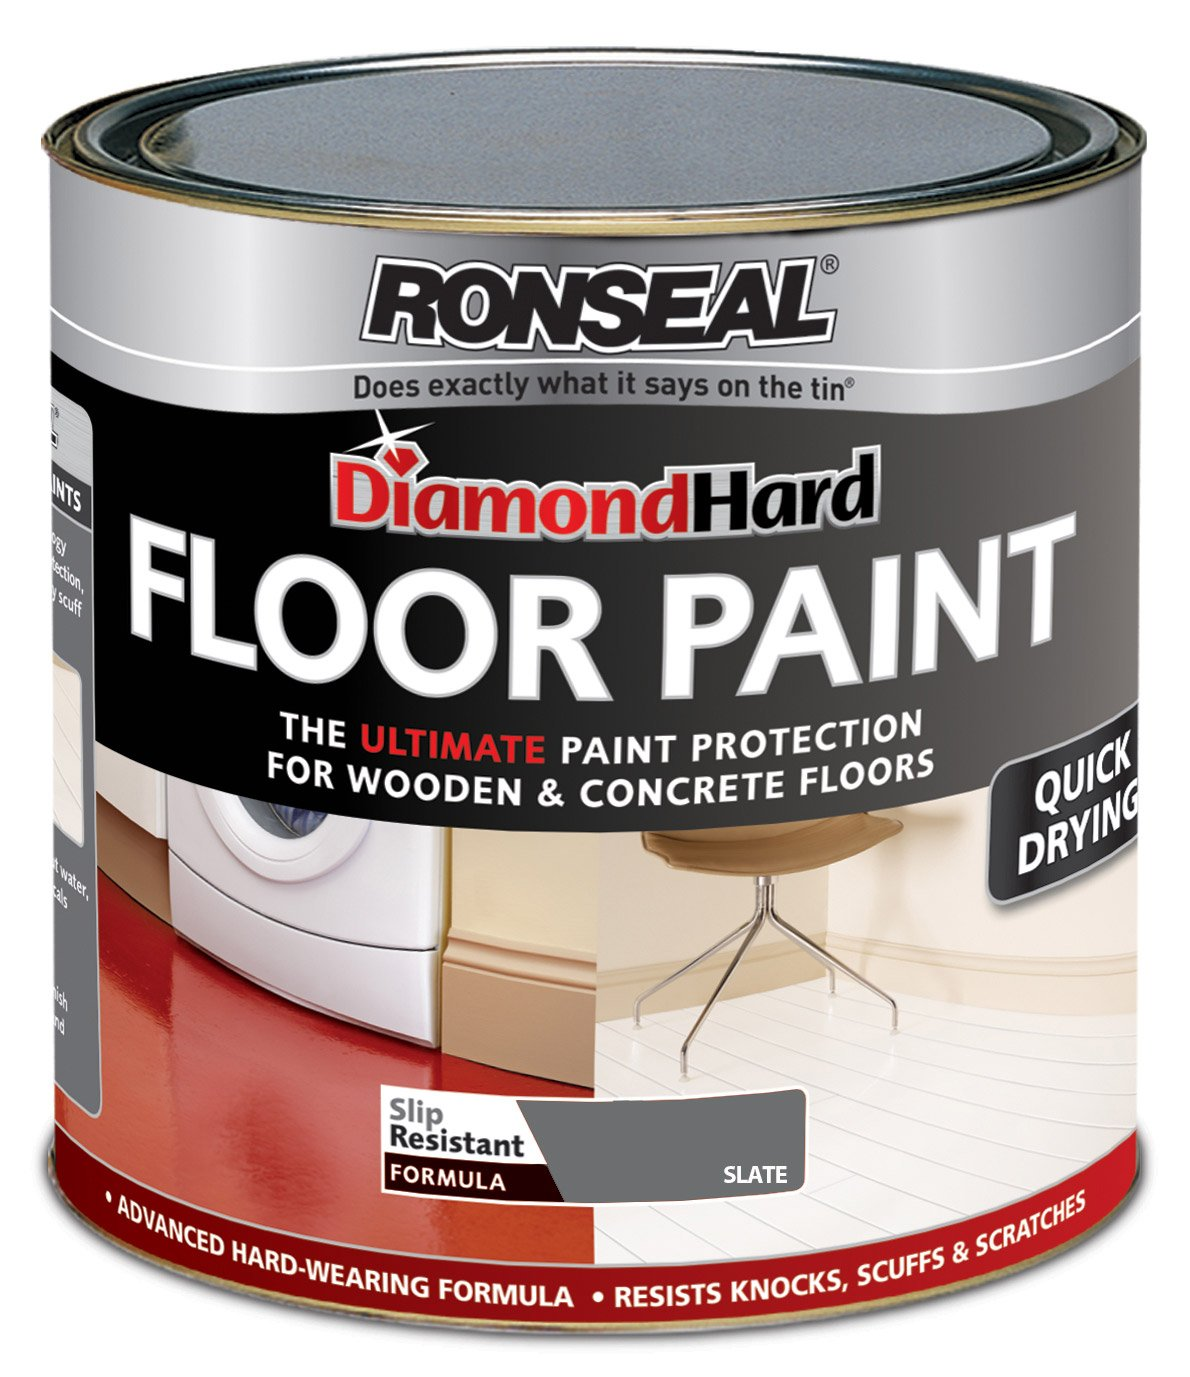 Ronseal Dhfpsl25l 2 5l Diamond Hard Floor Paint Slate Amazon Co